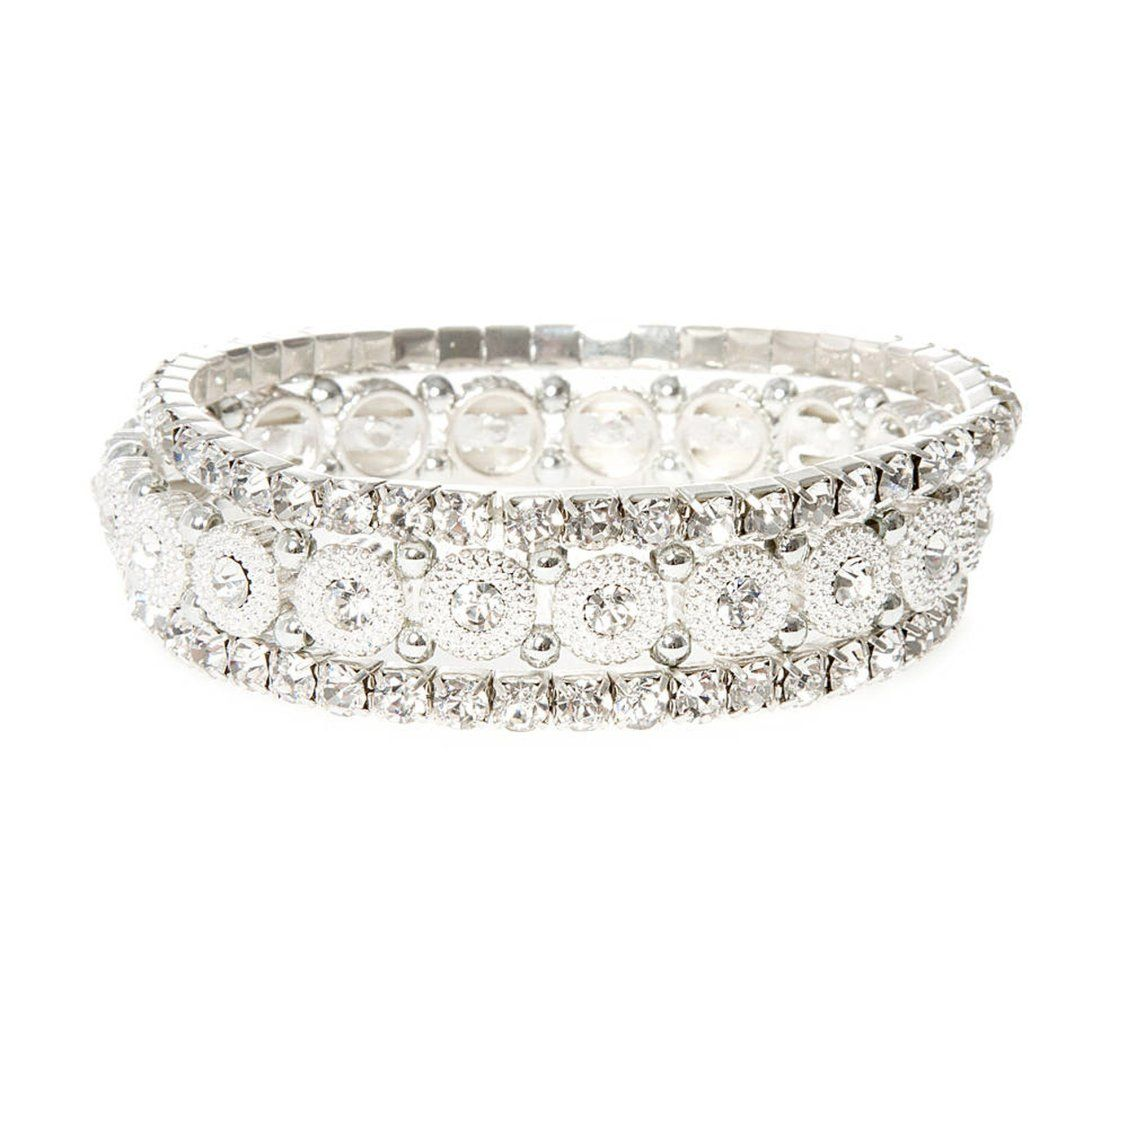 cb8629226d8 Rhinestone and Medallion Stretch Bracelets 3 Pack | Pile on the sparkle and  shine effortlessly. This set includes two thin rhinestone stretch bracelets  and ...